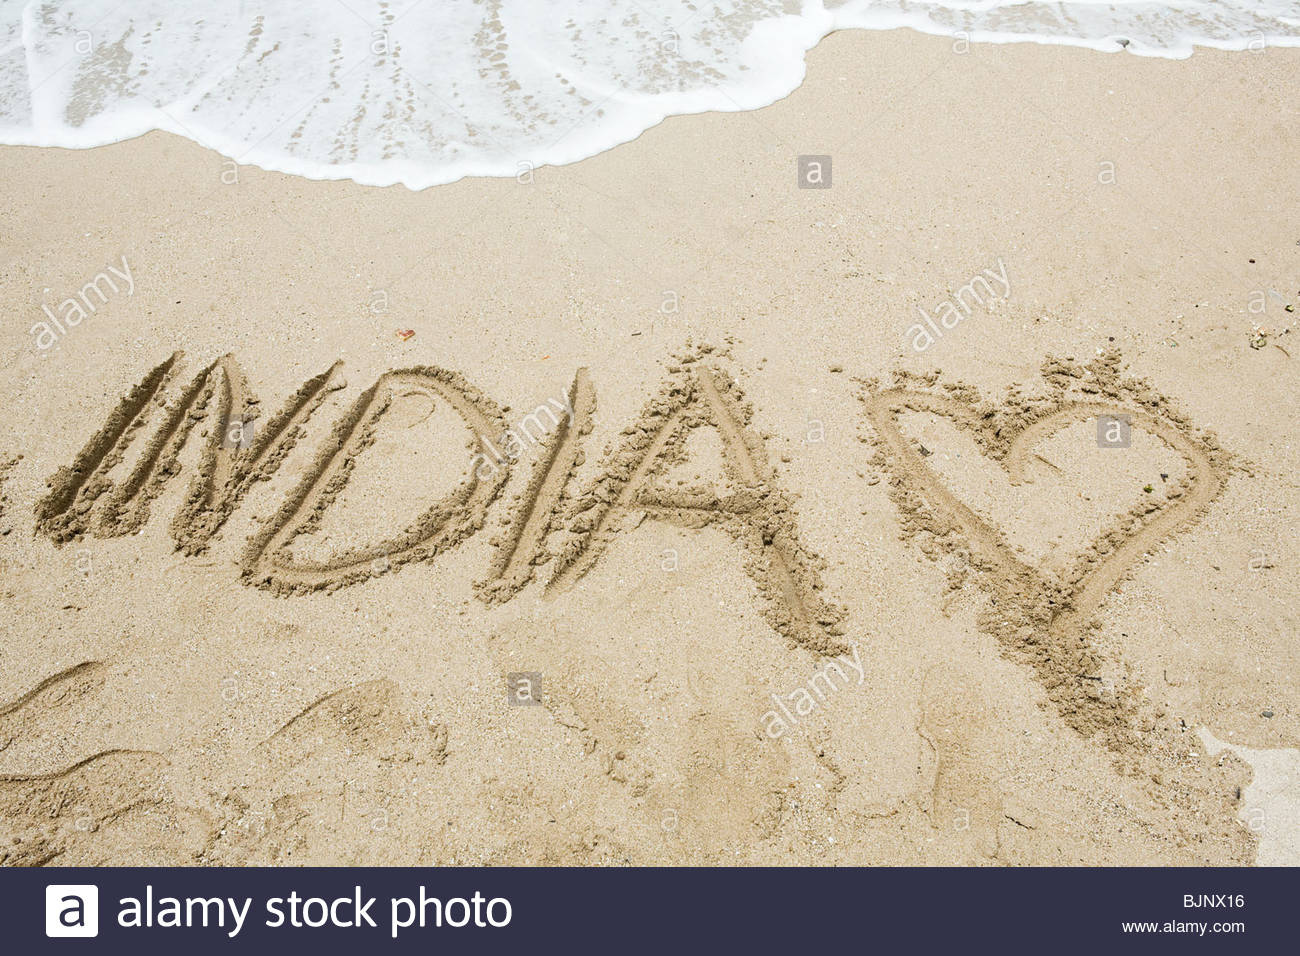 India written in sand - Stock Image